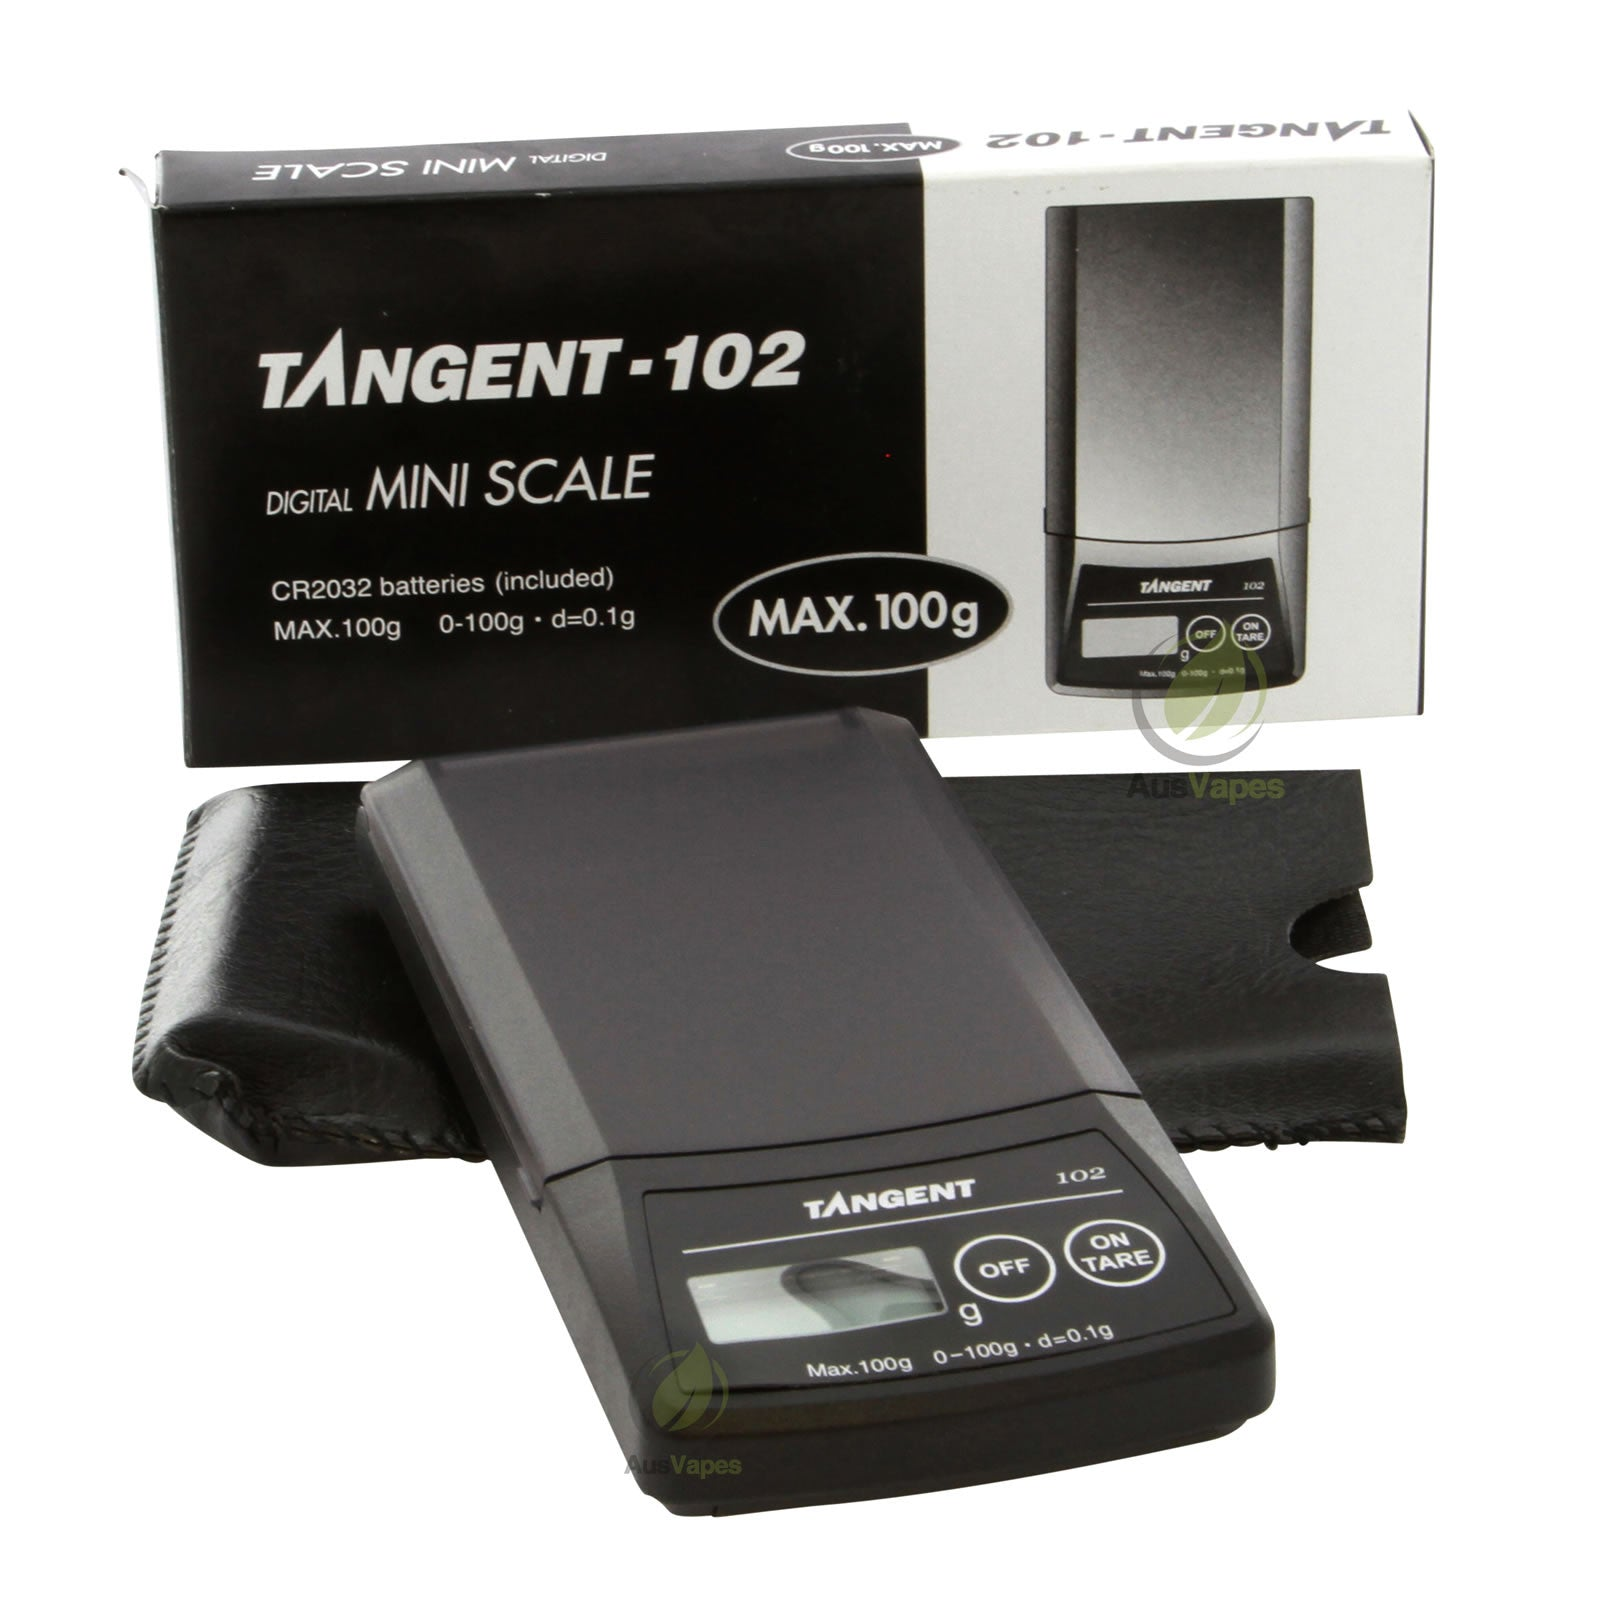 DISCONTINUED Tanita Tangent-102 Mini Digital Scale 100g x 0.1g